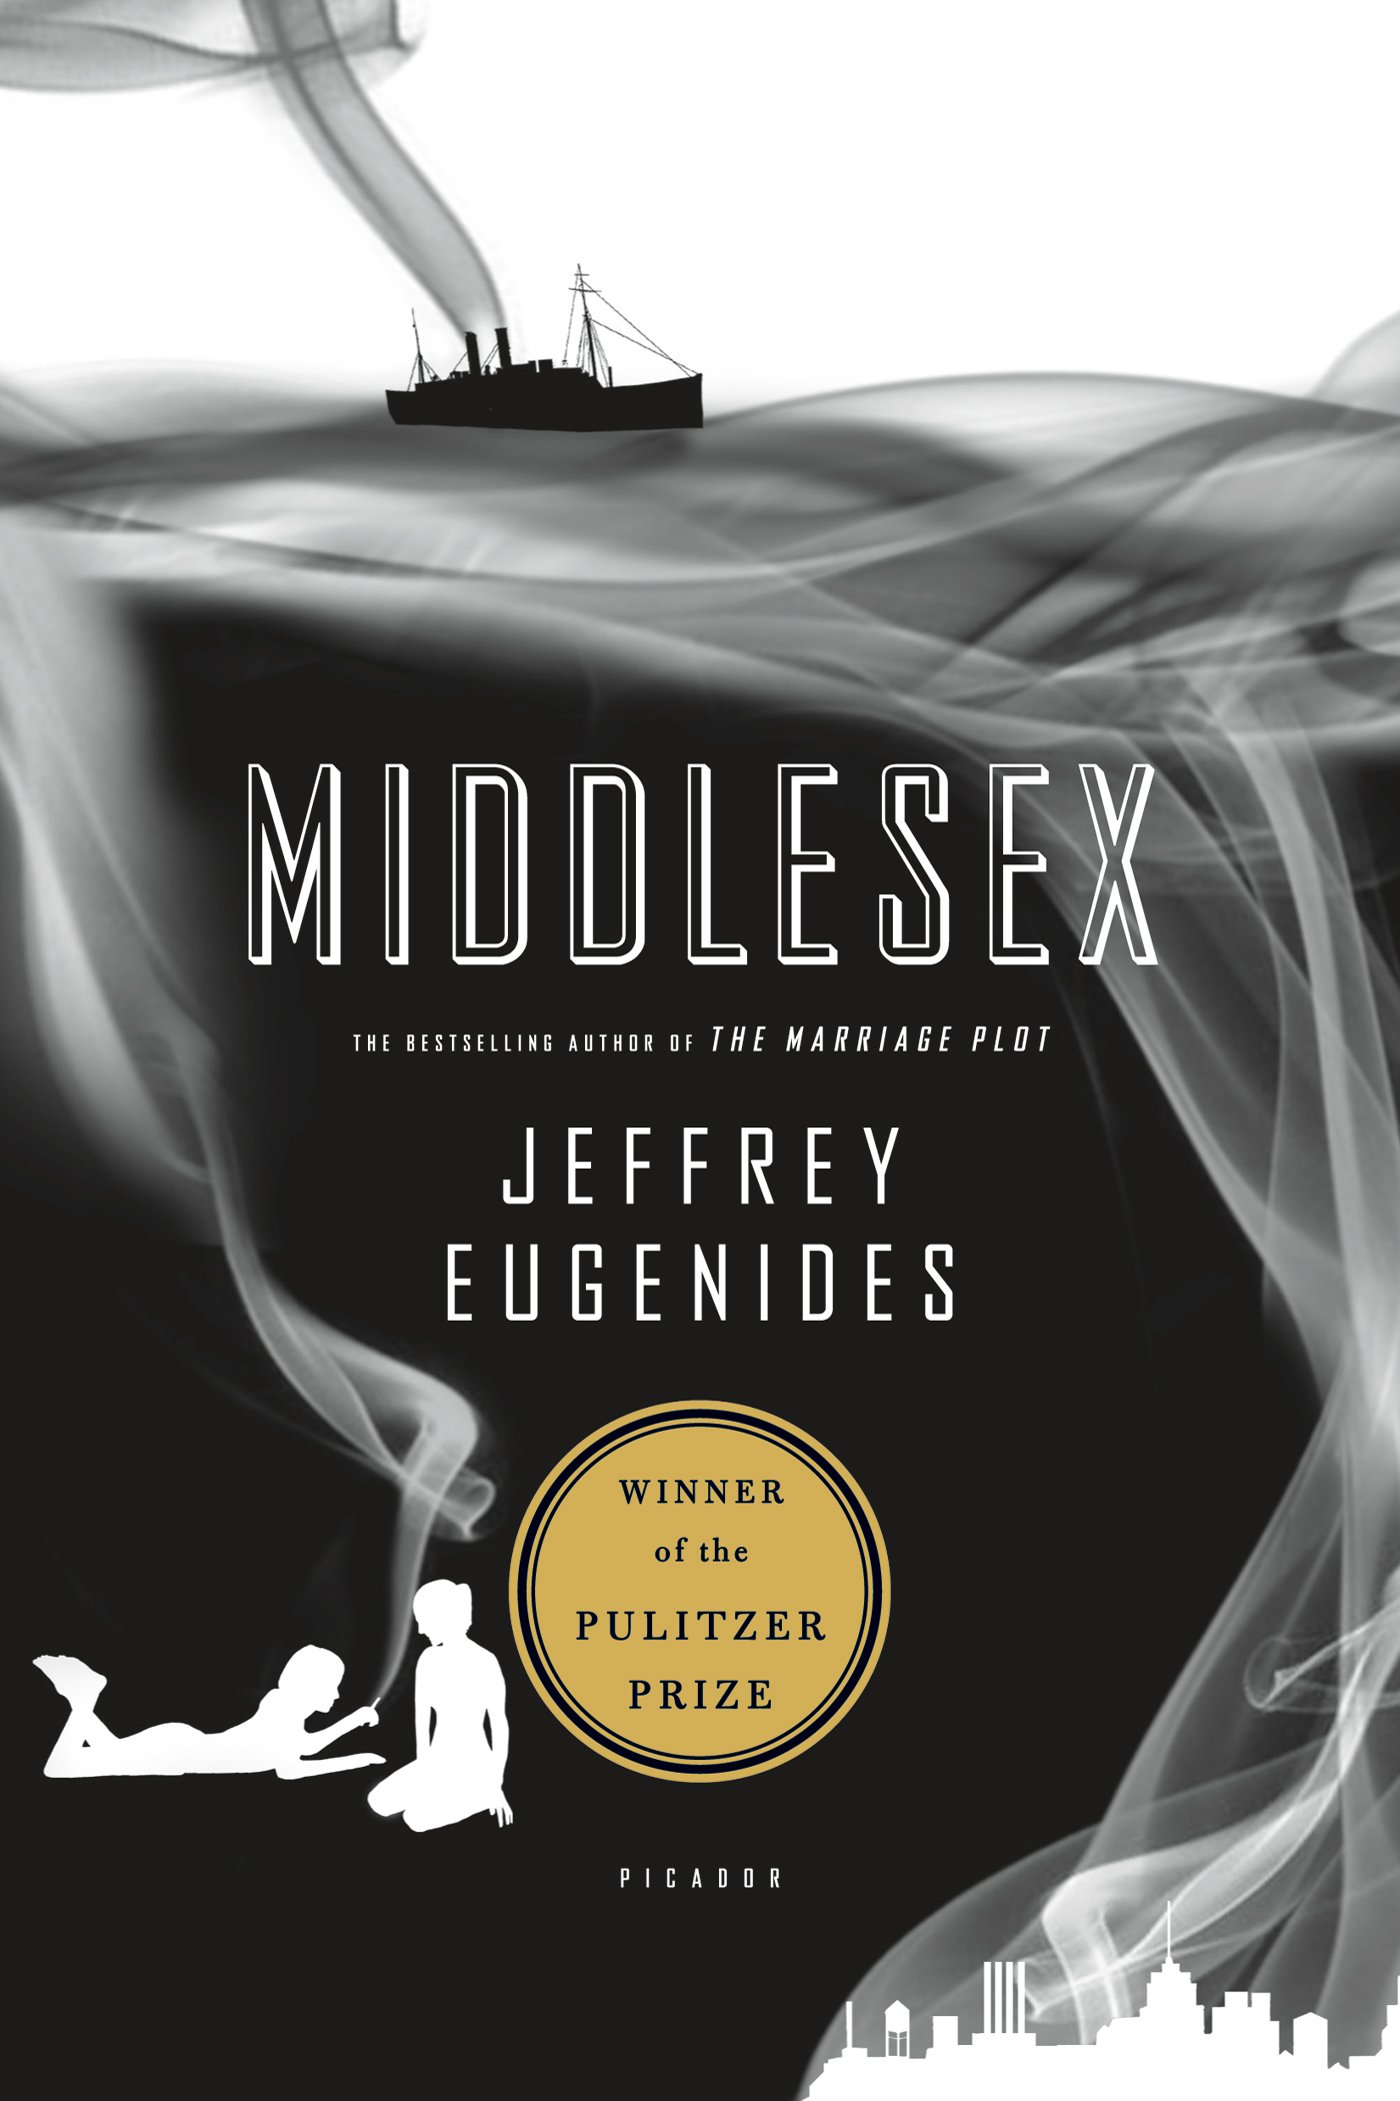 Image result for middlesex (novel)